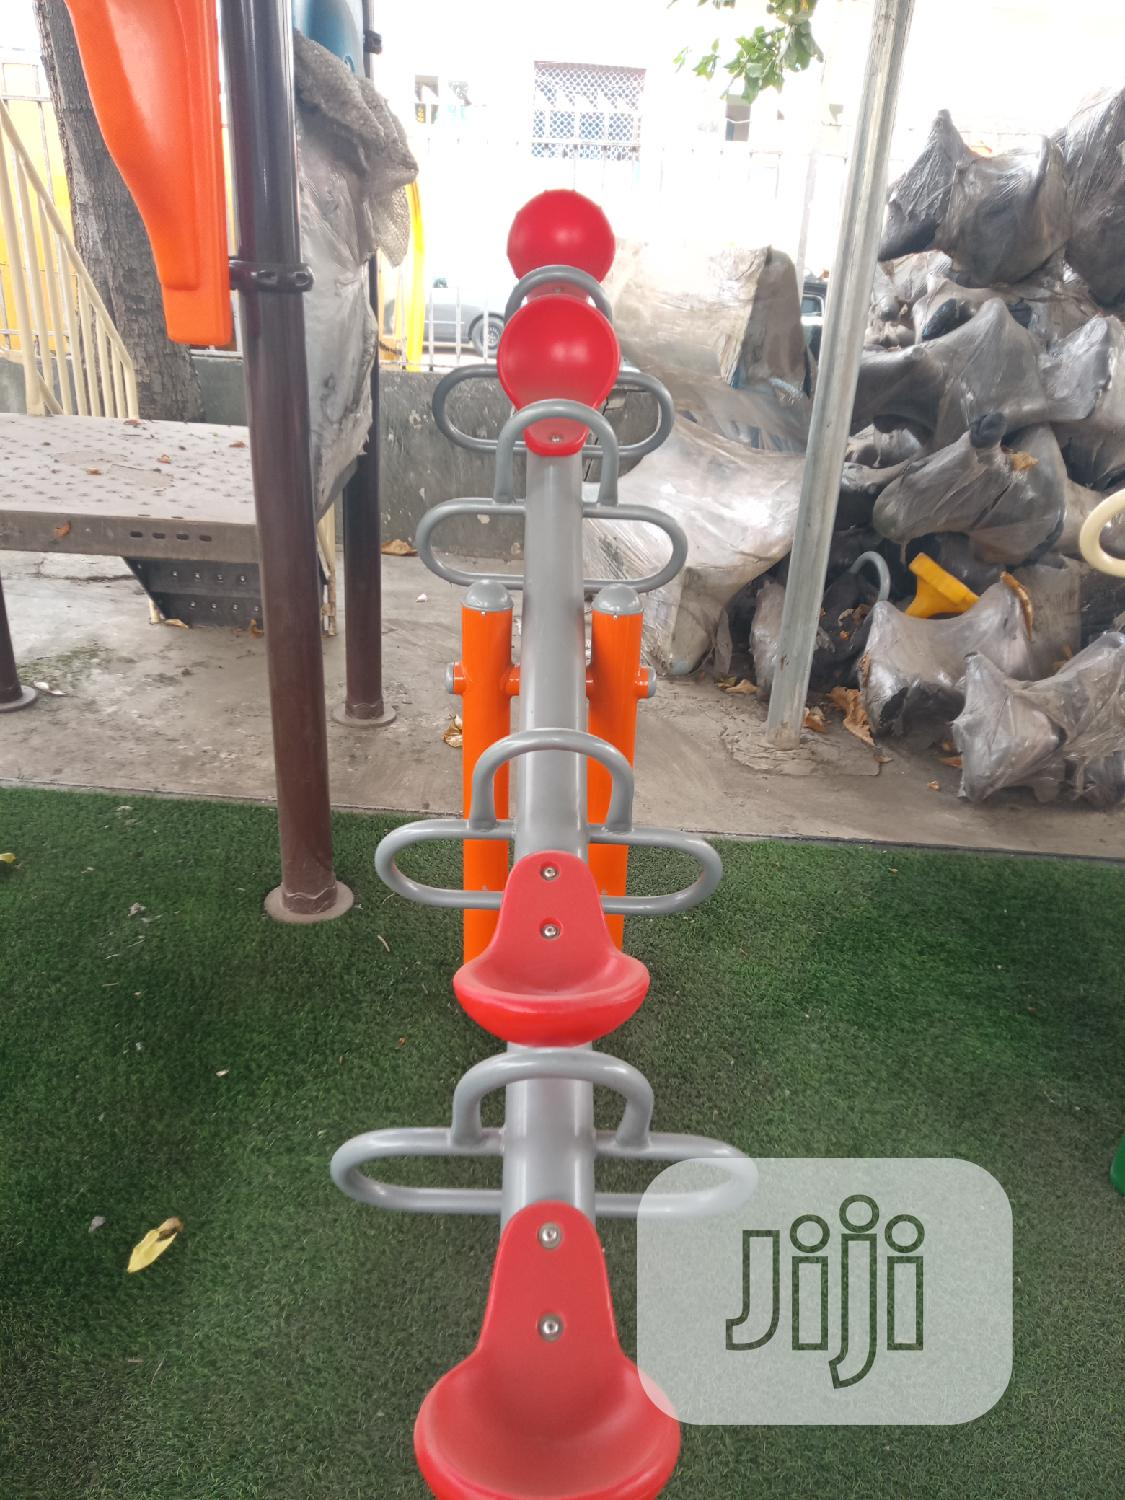 4 in 1 Seesaw for Children and Adults